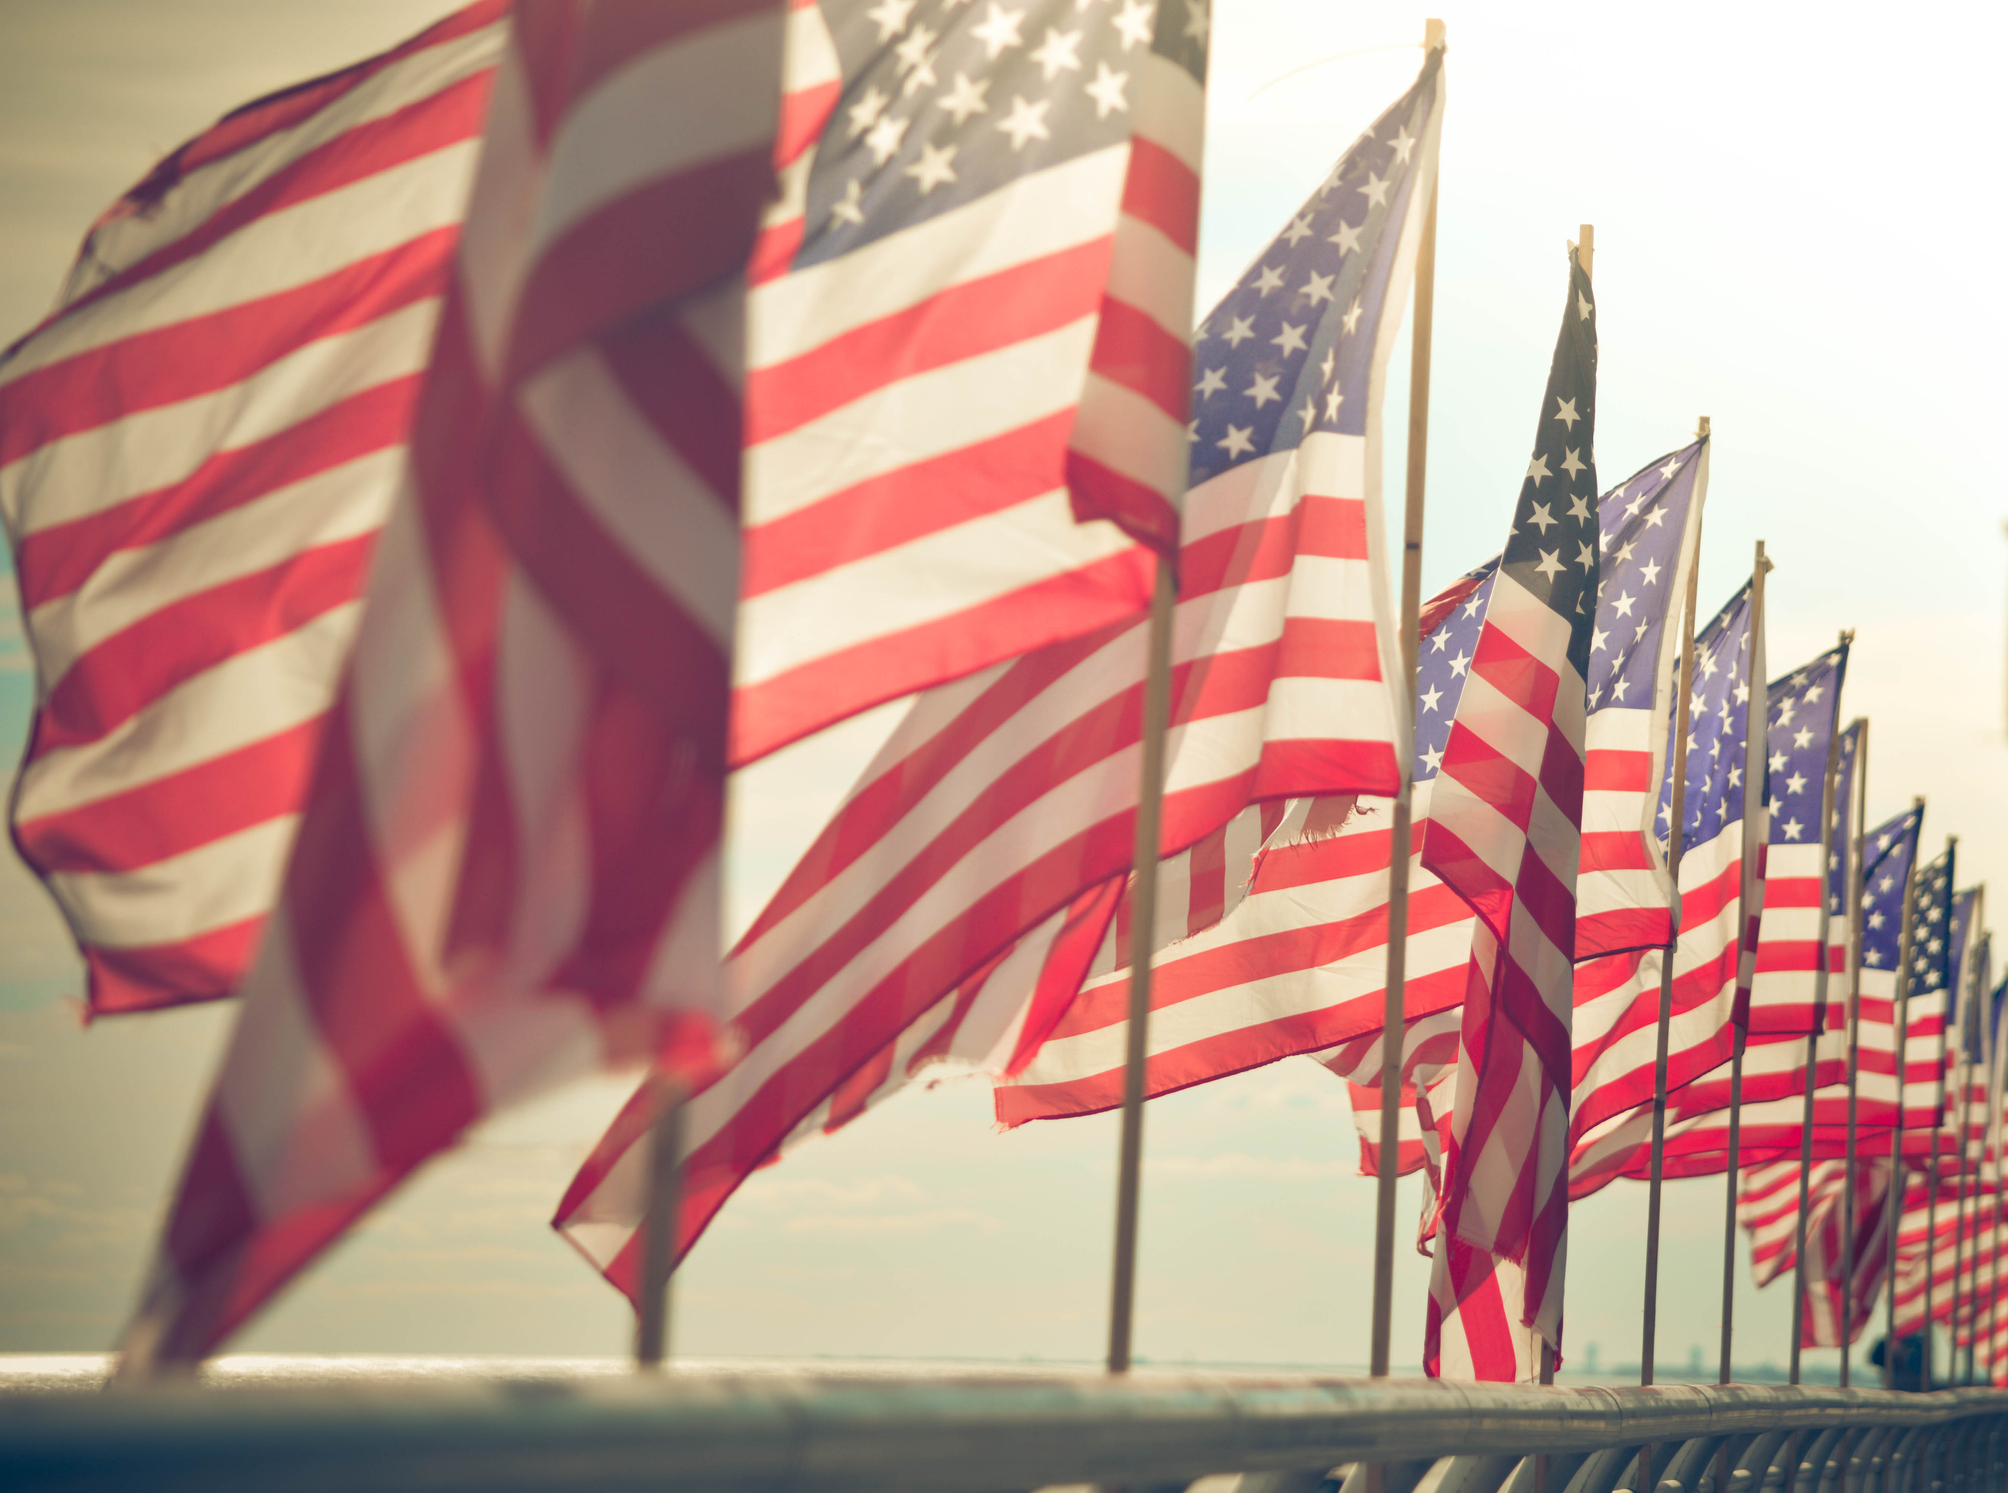 American Flags at the beach